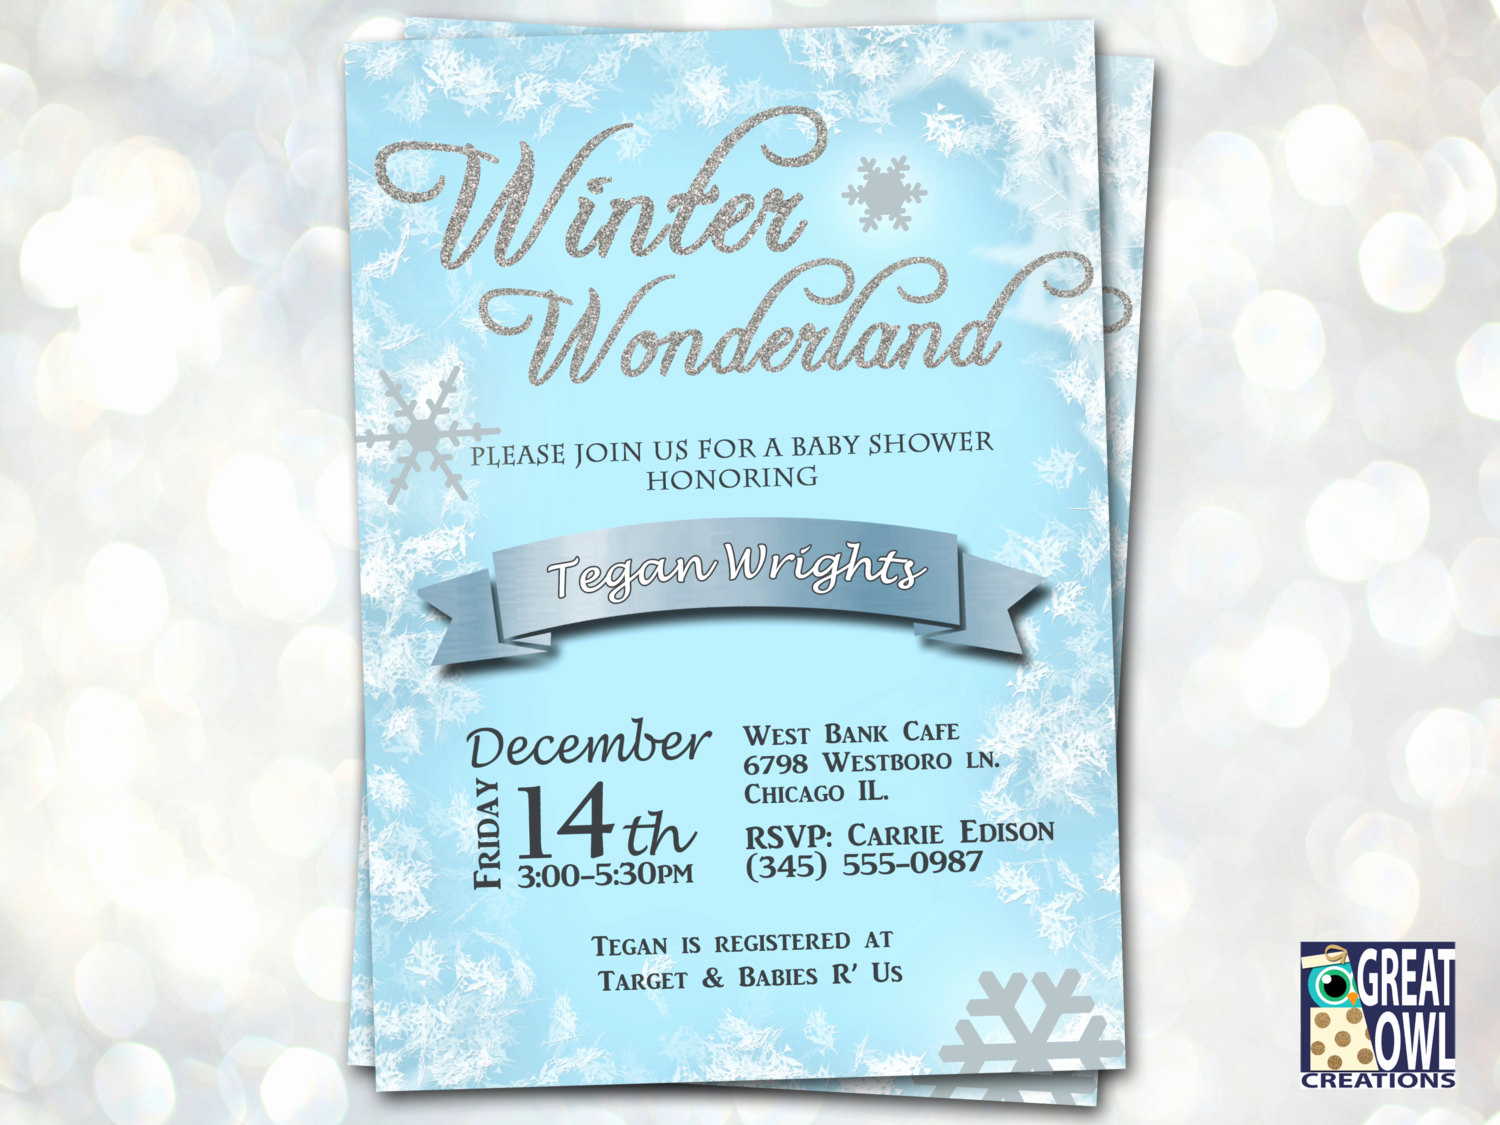 Winter Wonderland Baby Shower Invitation Luxury Chandeliers & Pendant Lights